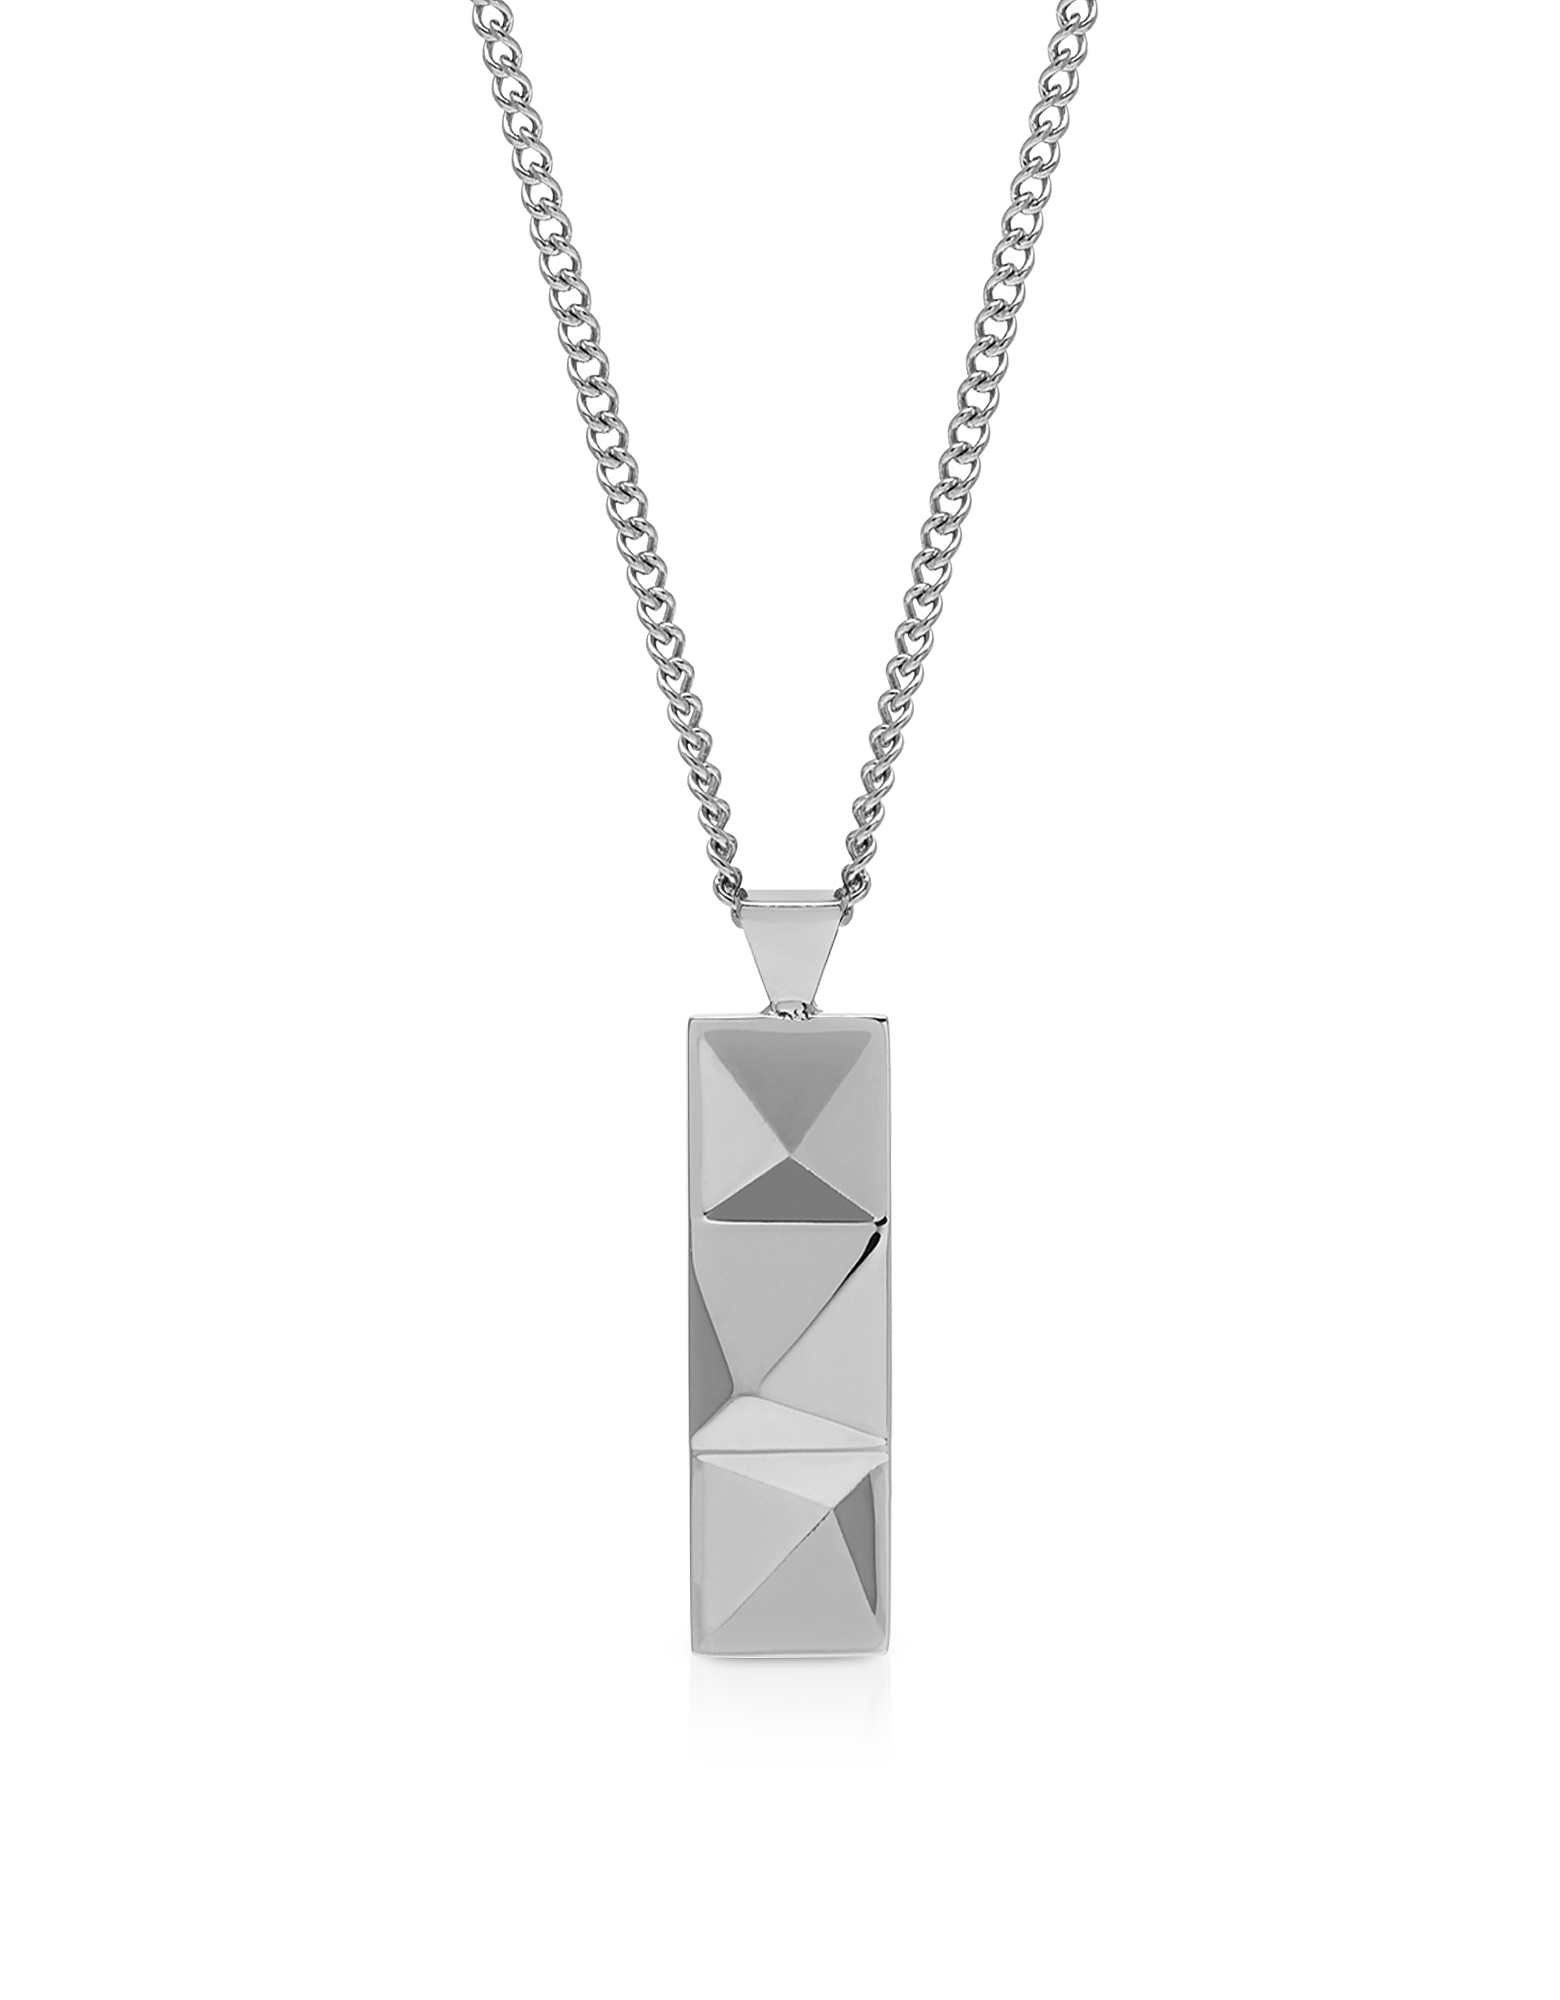 Northskull Designer Men's Necklaces, In'N'Out Tag Necklace Silver